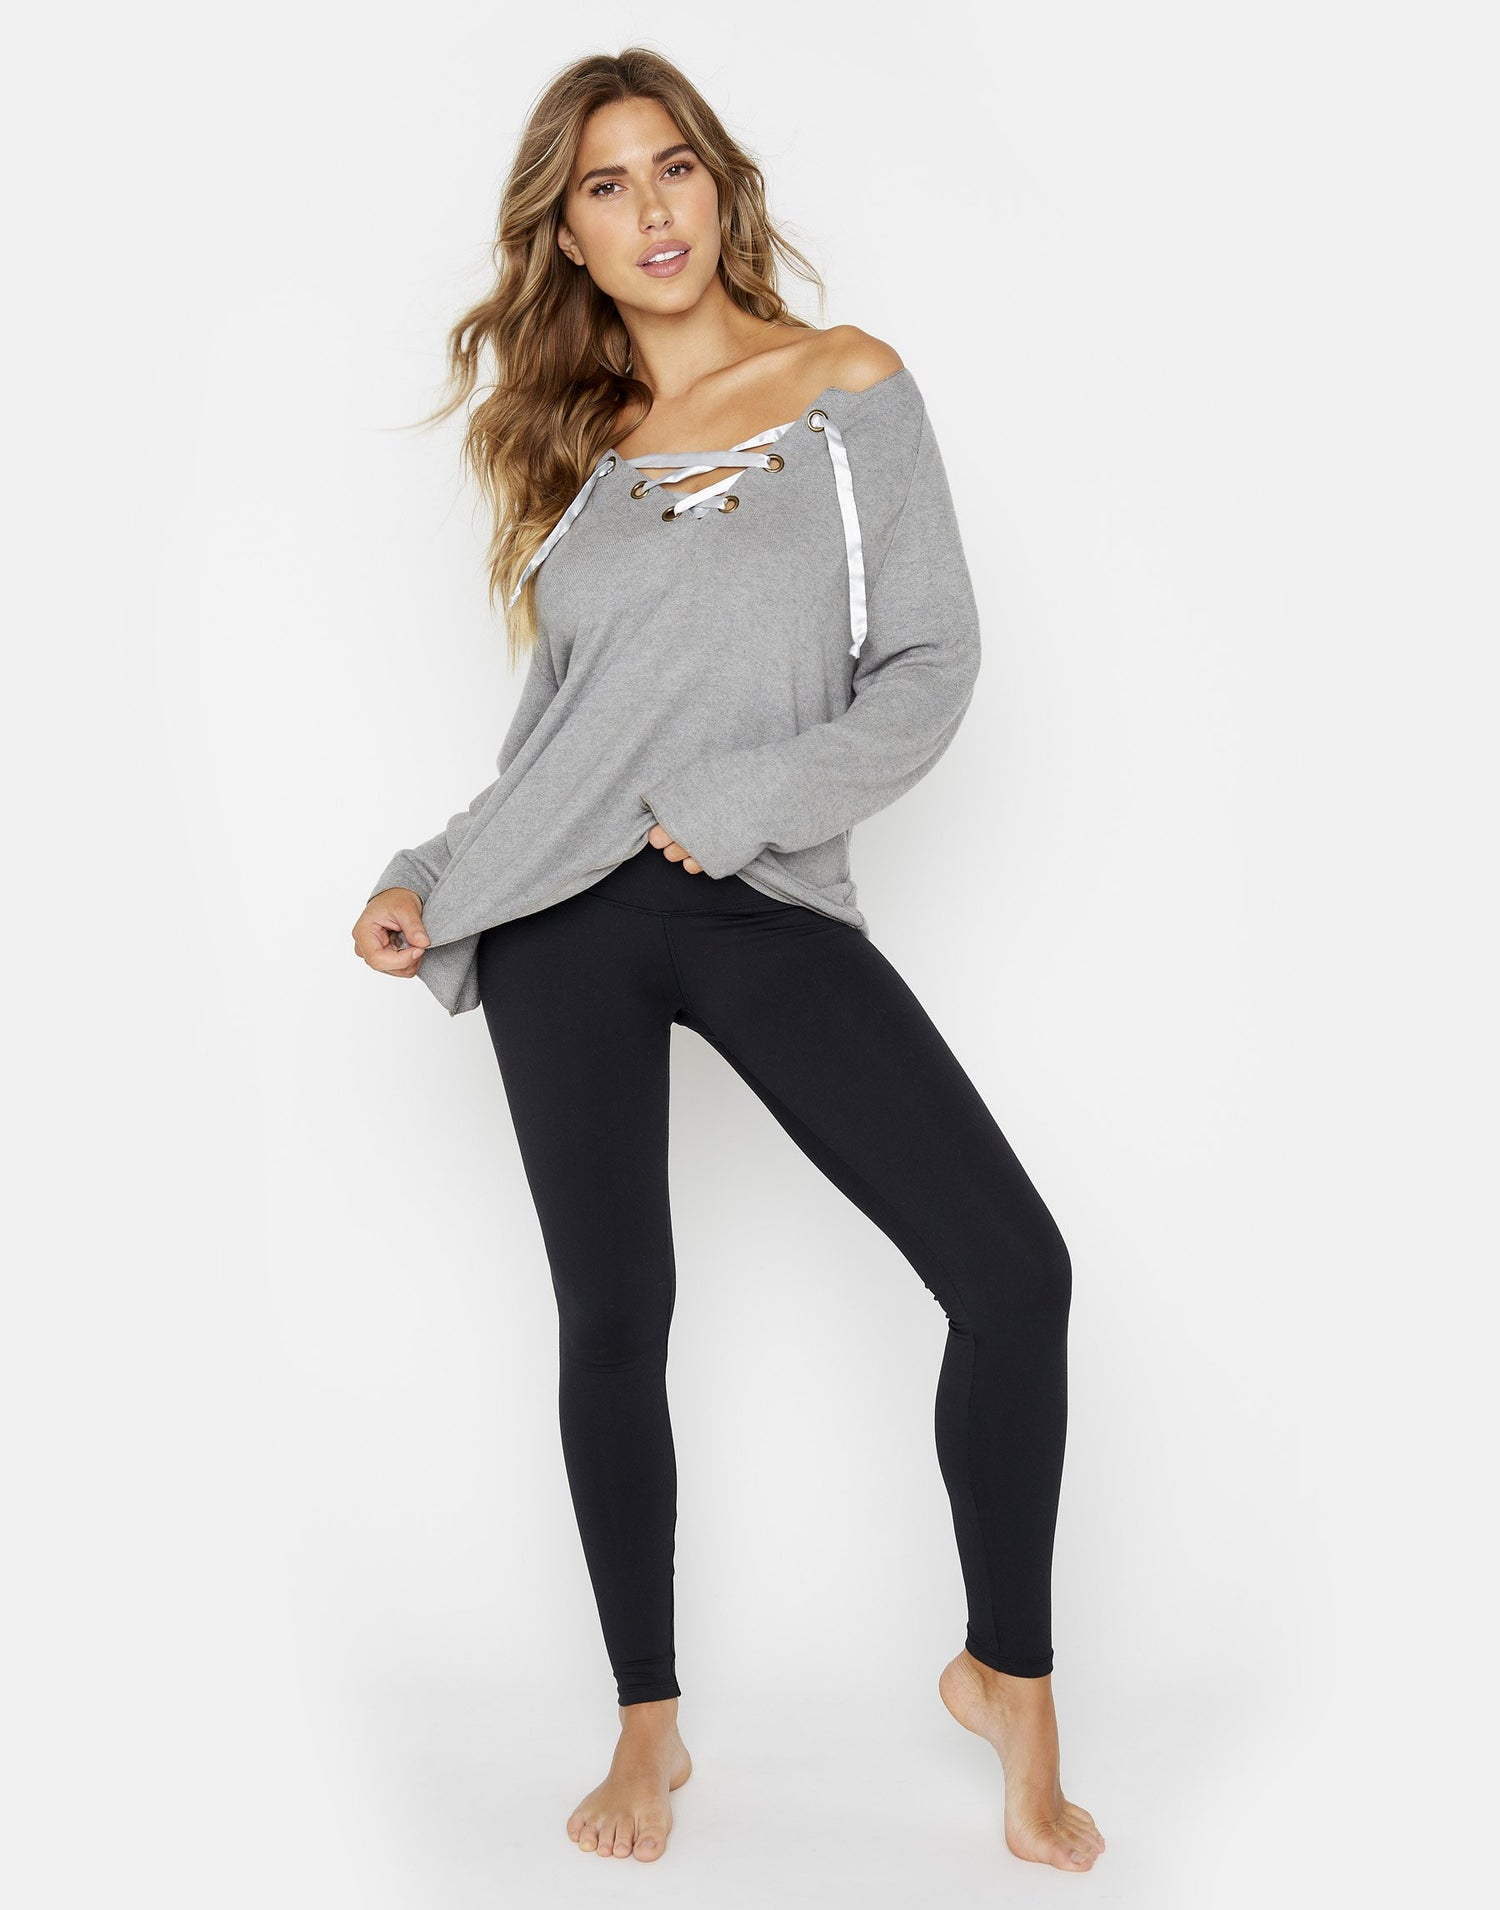 Heather Gray Josie Sweatshirt - Front View